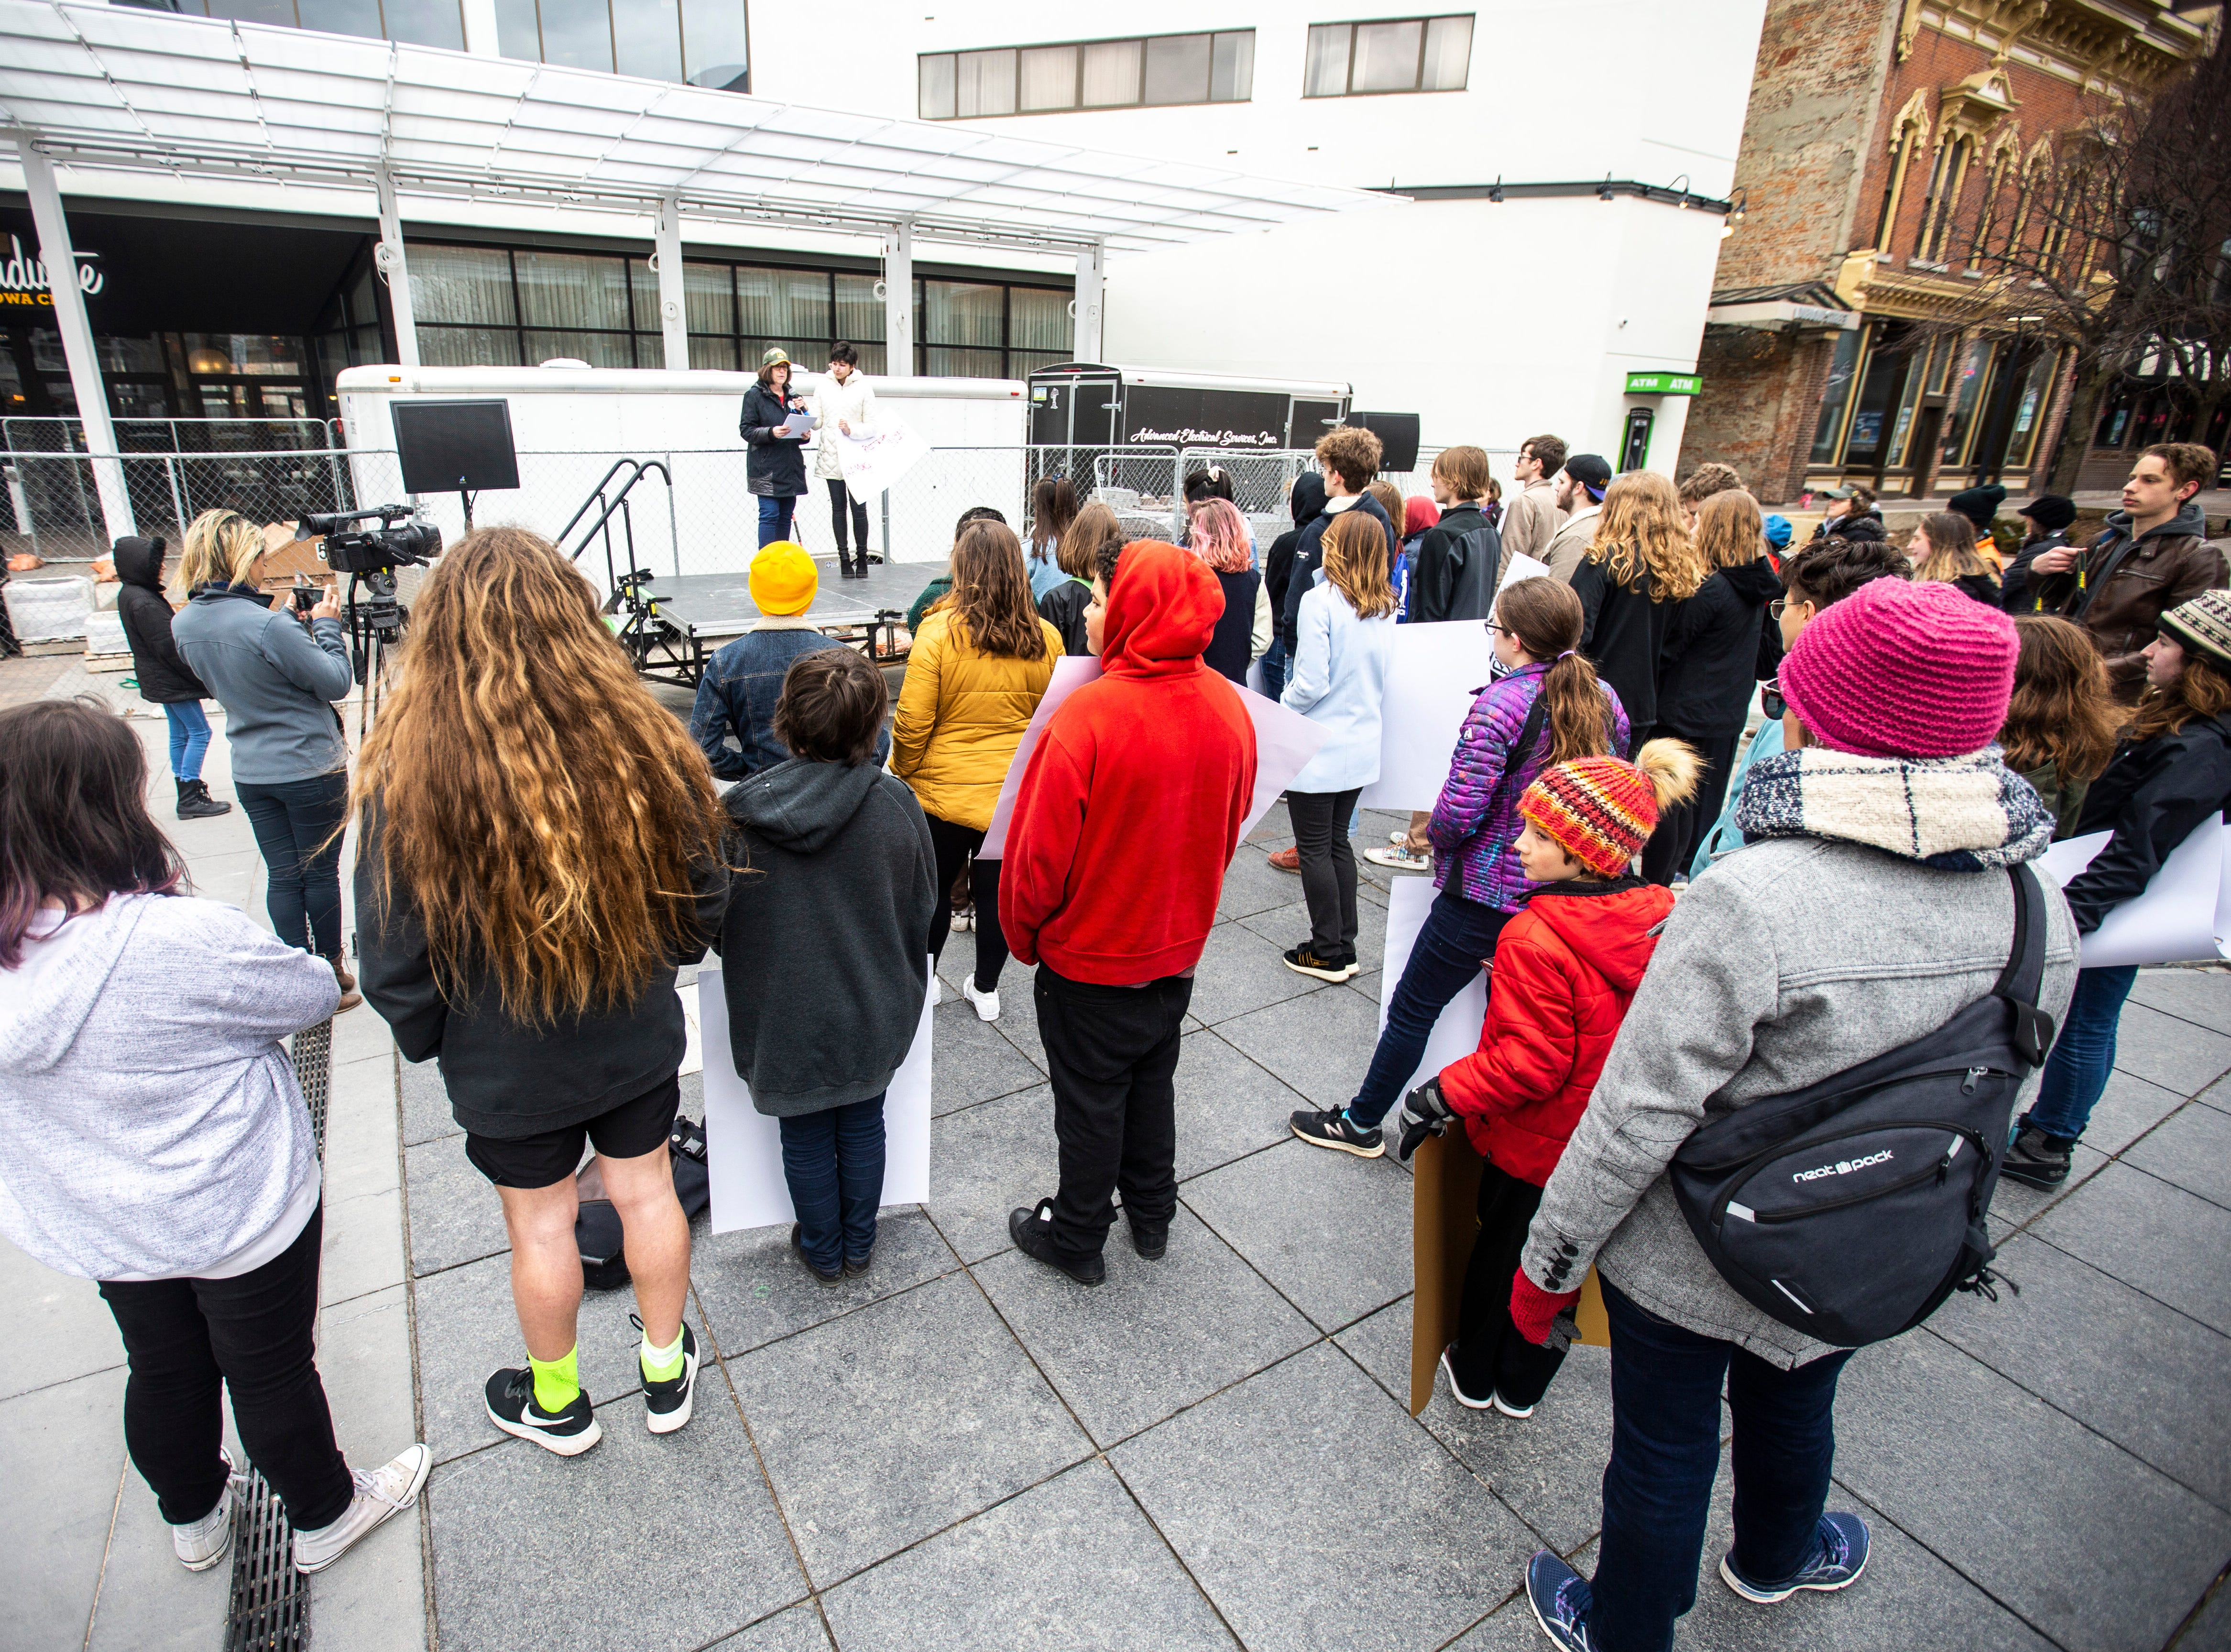 Holly Sanger, of the Moms Demand Action group speaks during an event organized by the Students Against School Shootings group on Saturday, March 30, 2019, along the pedestrian mall in downtown Iowa City, Iowa.